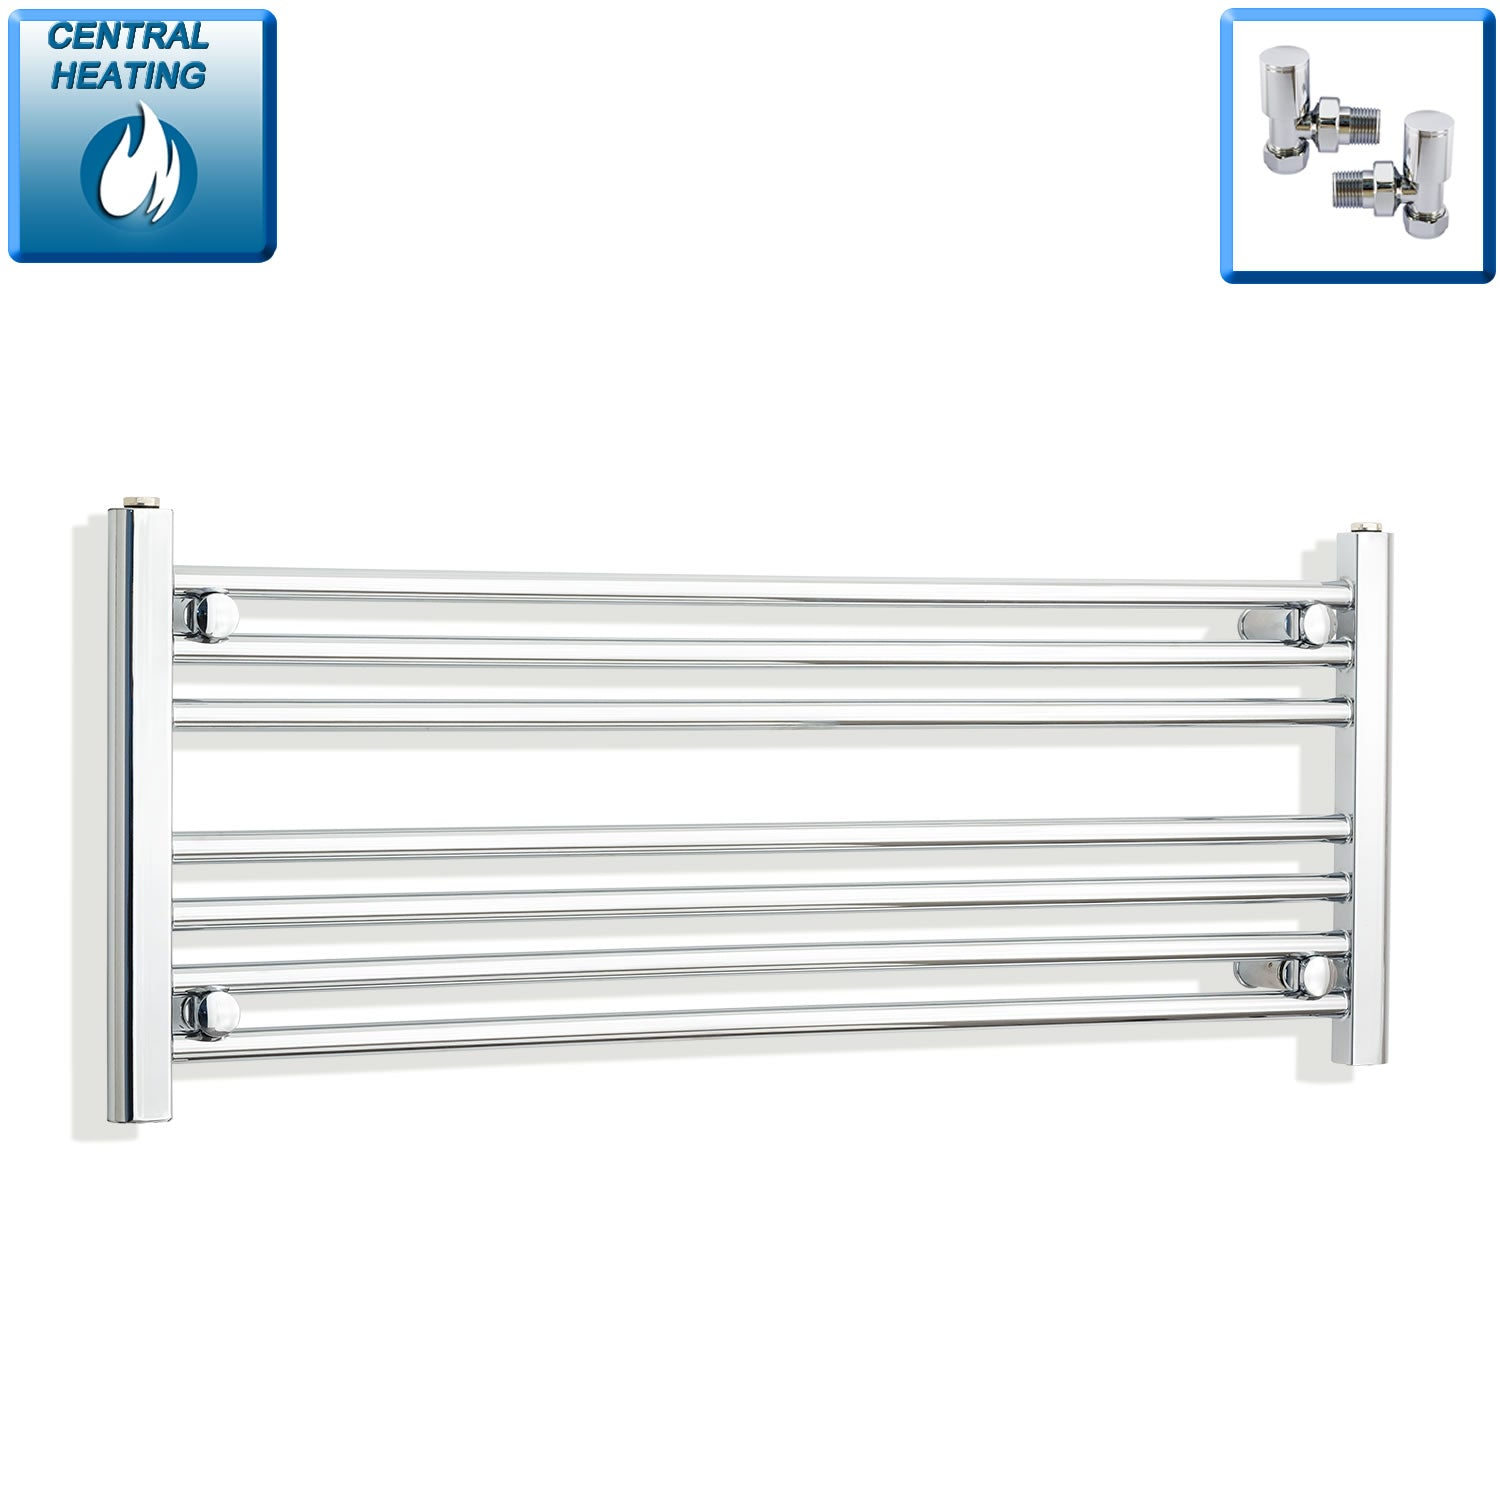 1300mm Wide 400mm High Chrome Towel Rail Radiator With Angled Valve